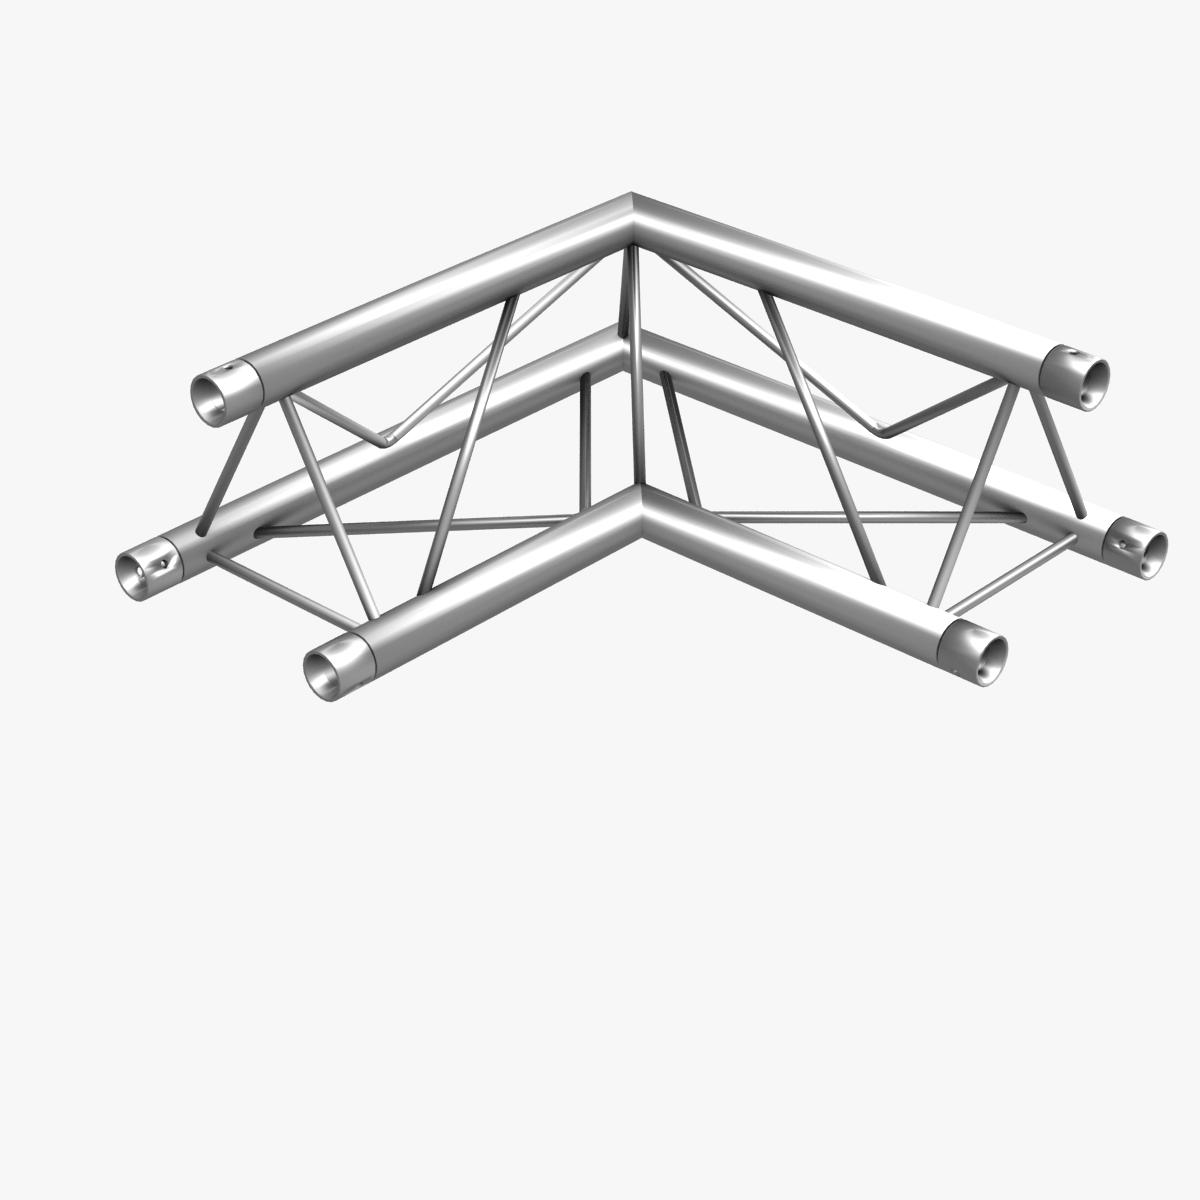 Triangular trusses collection 55 modular pieces 3d model for Buy truss